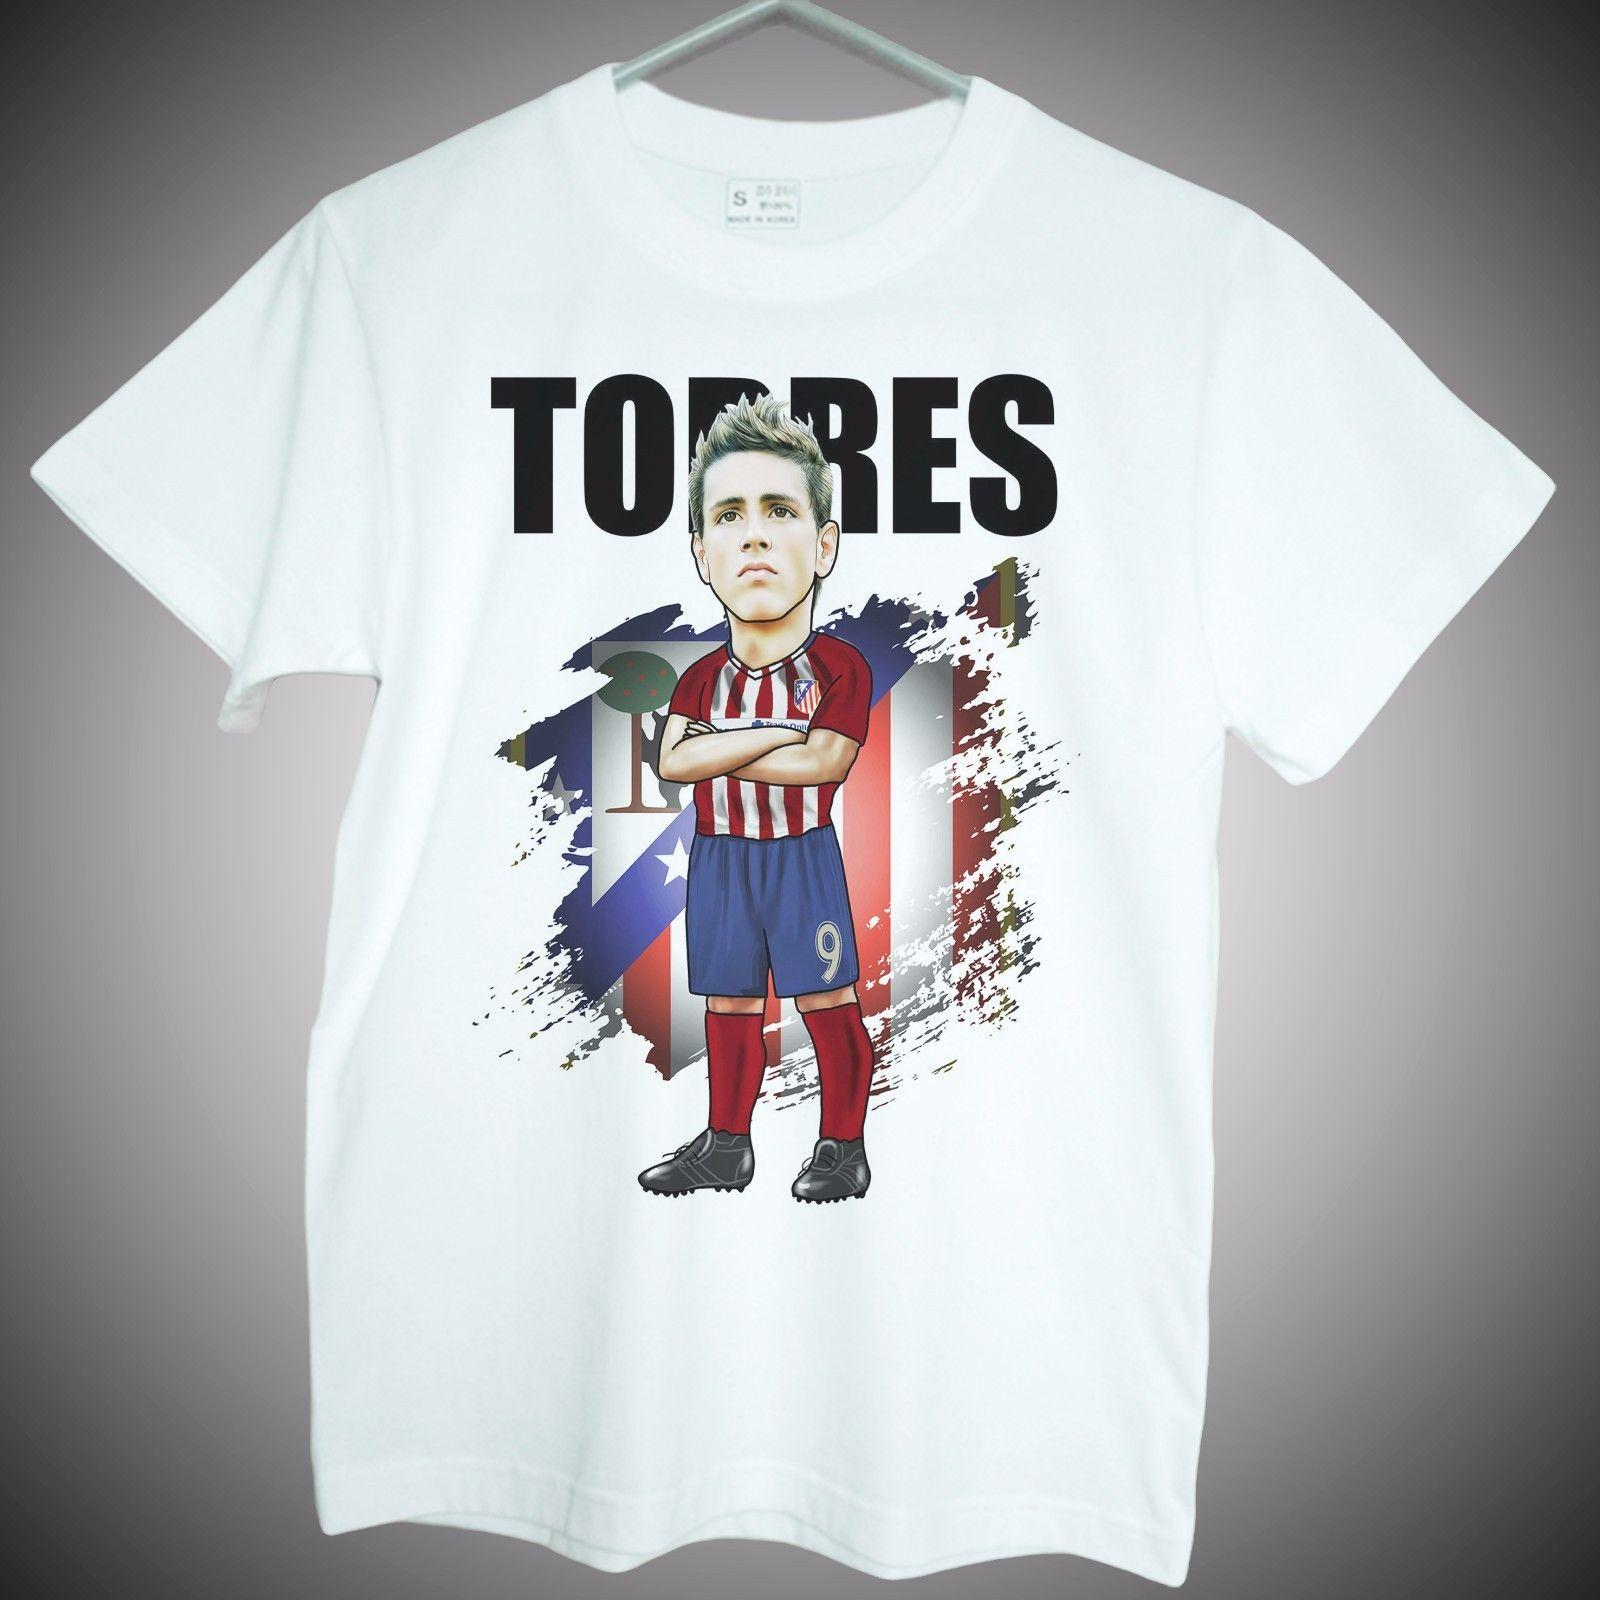 f48d26b59a1 Fernando Torres T Shirts Madrid Atletico Spain Soccer Graphic Mens Fans  Gifts Mens 2019 Fashion Brand T Shirt O Neck 100%cotton T Shirts Cool  Designs ...